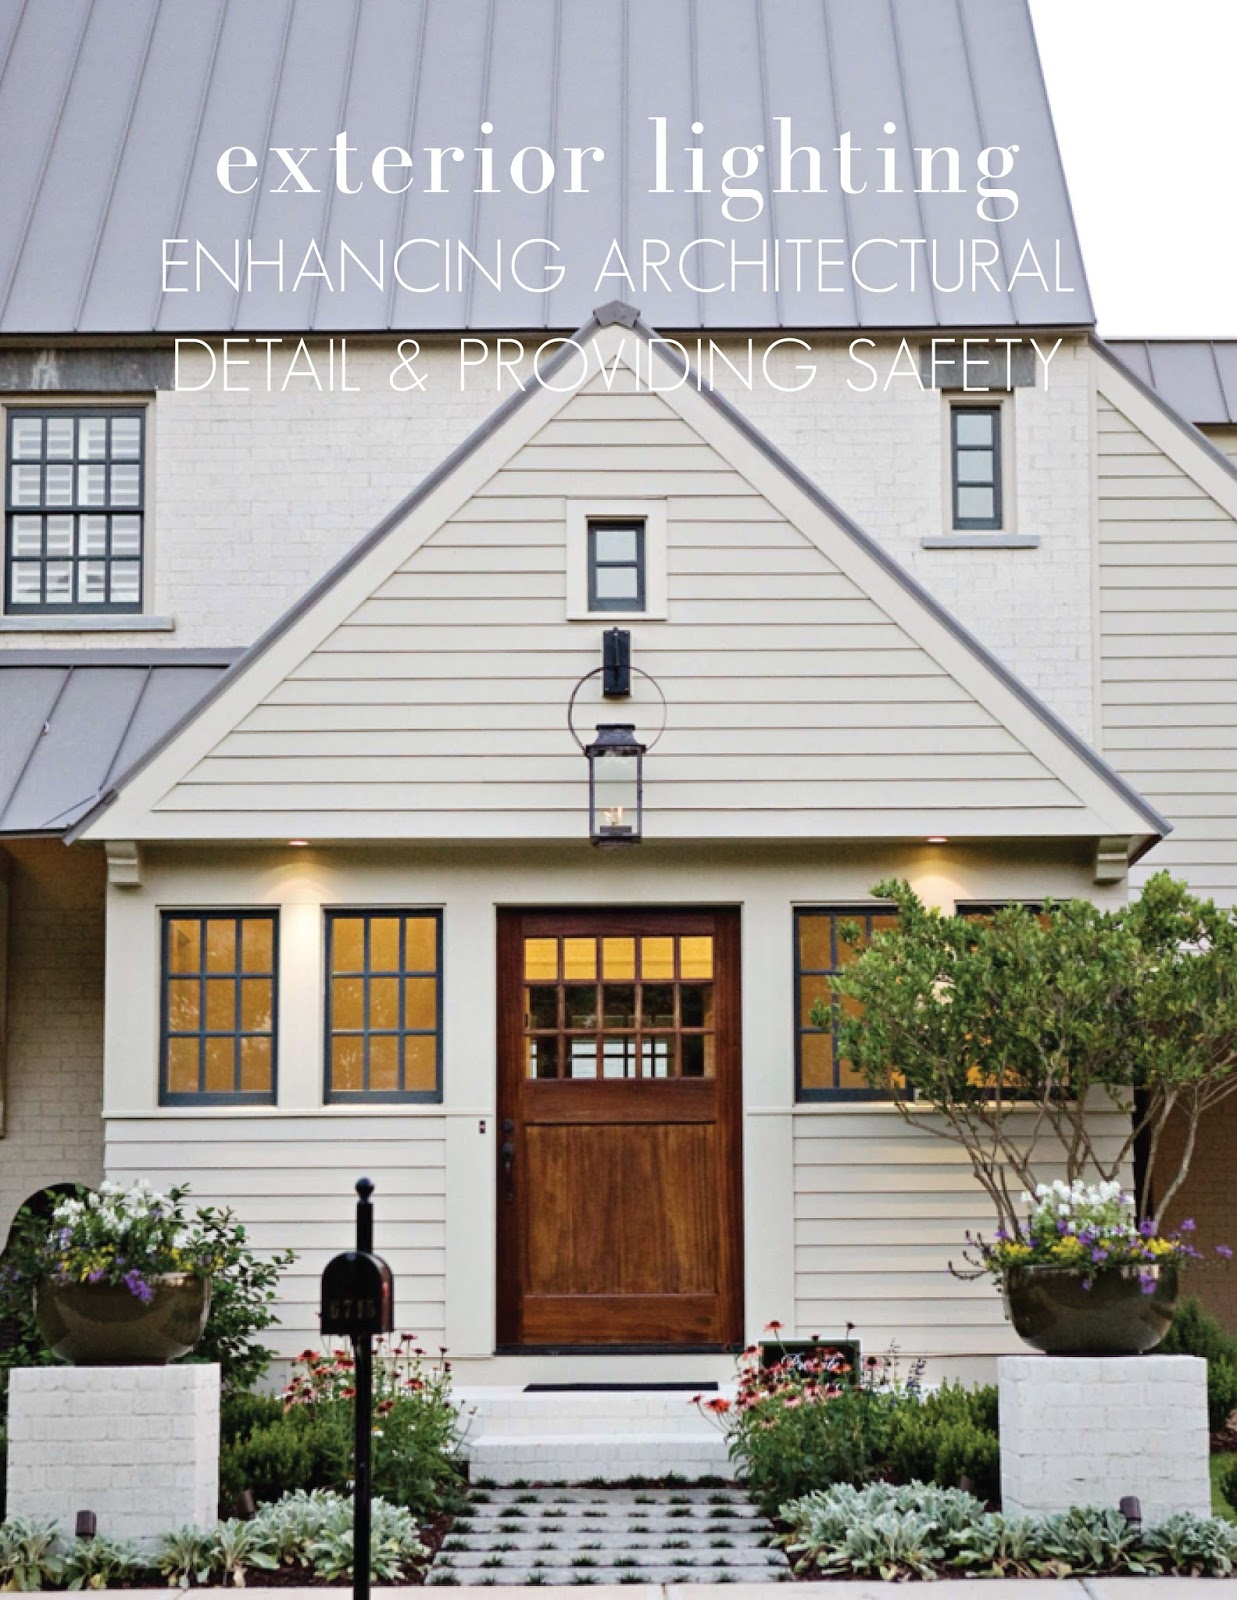 Ourso Designs Exterior Lighting Enhancing Architectural Detail And Providing Safety